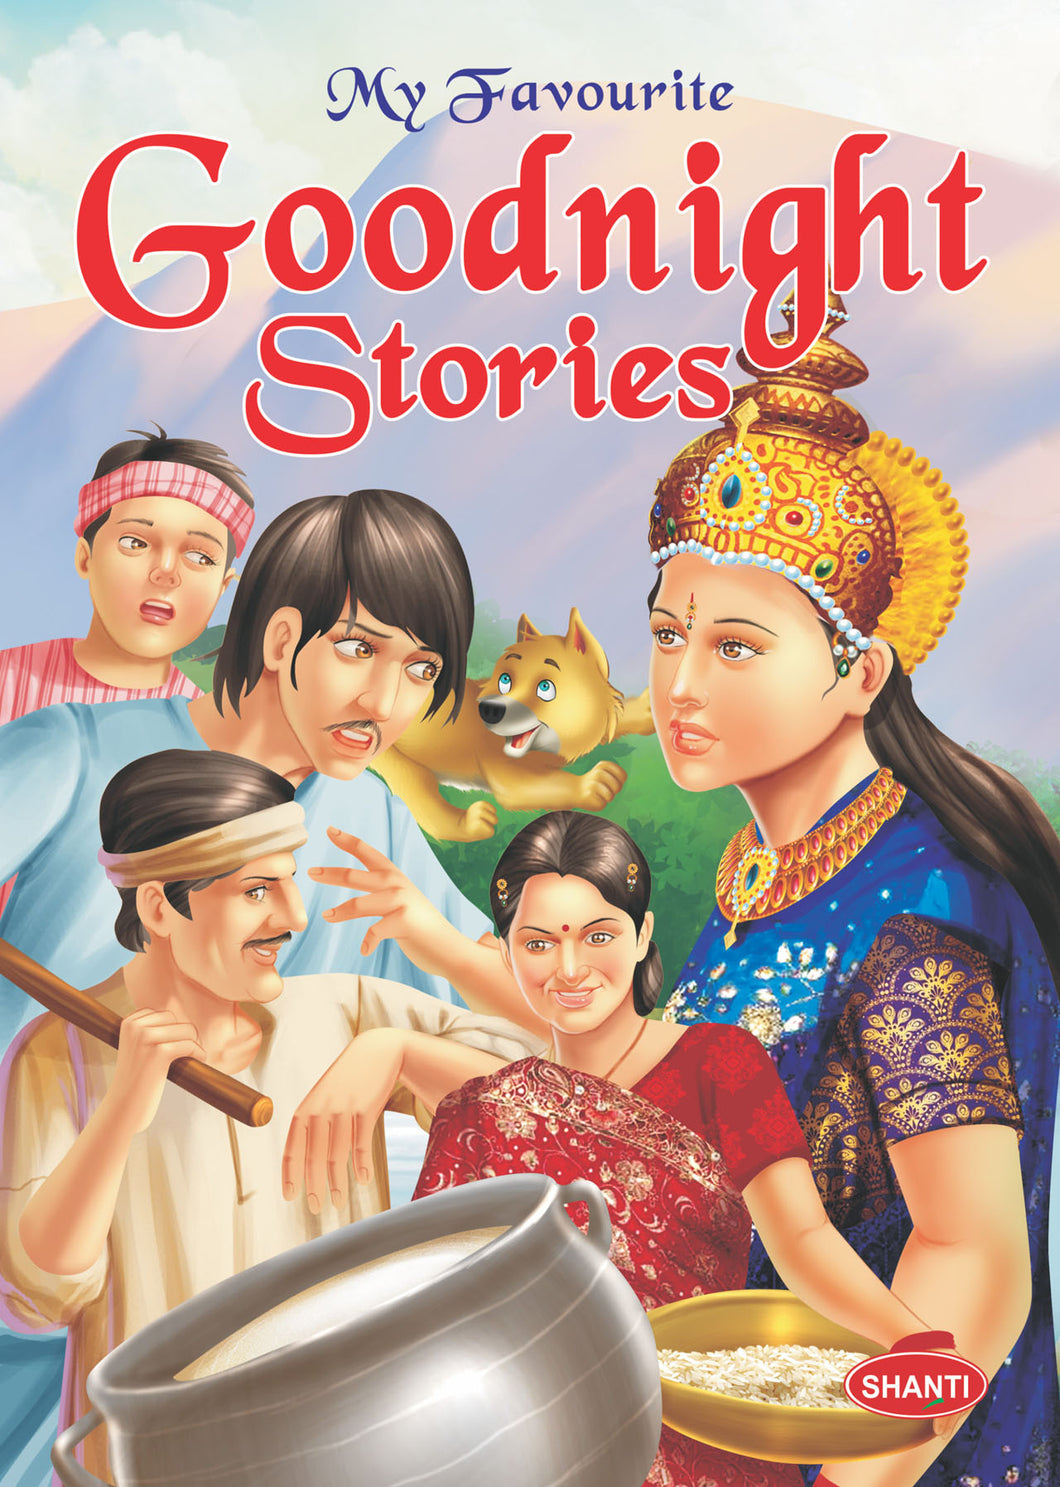 Story Book for Kids-My Favorite Goodnight Stories (English)-3